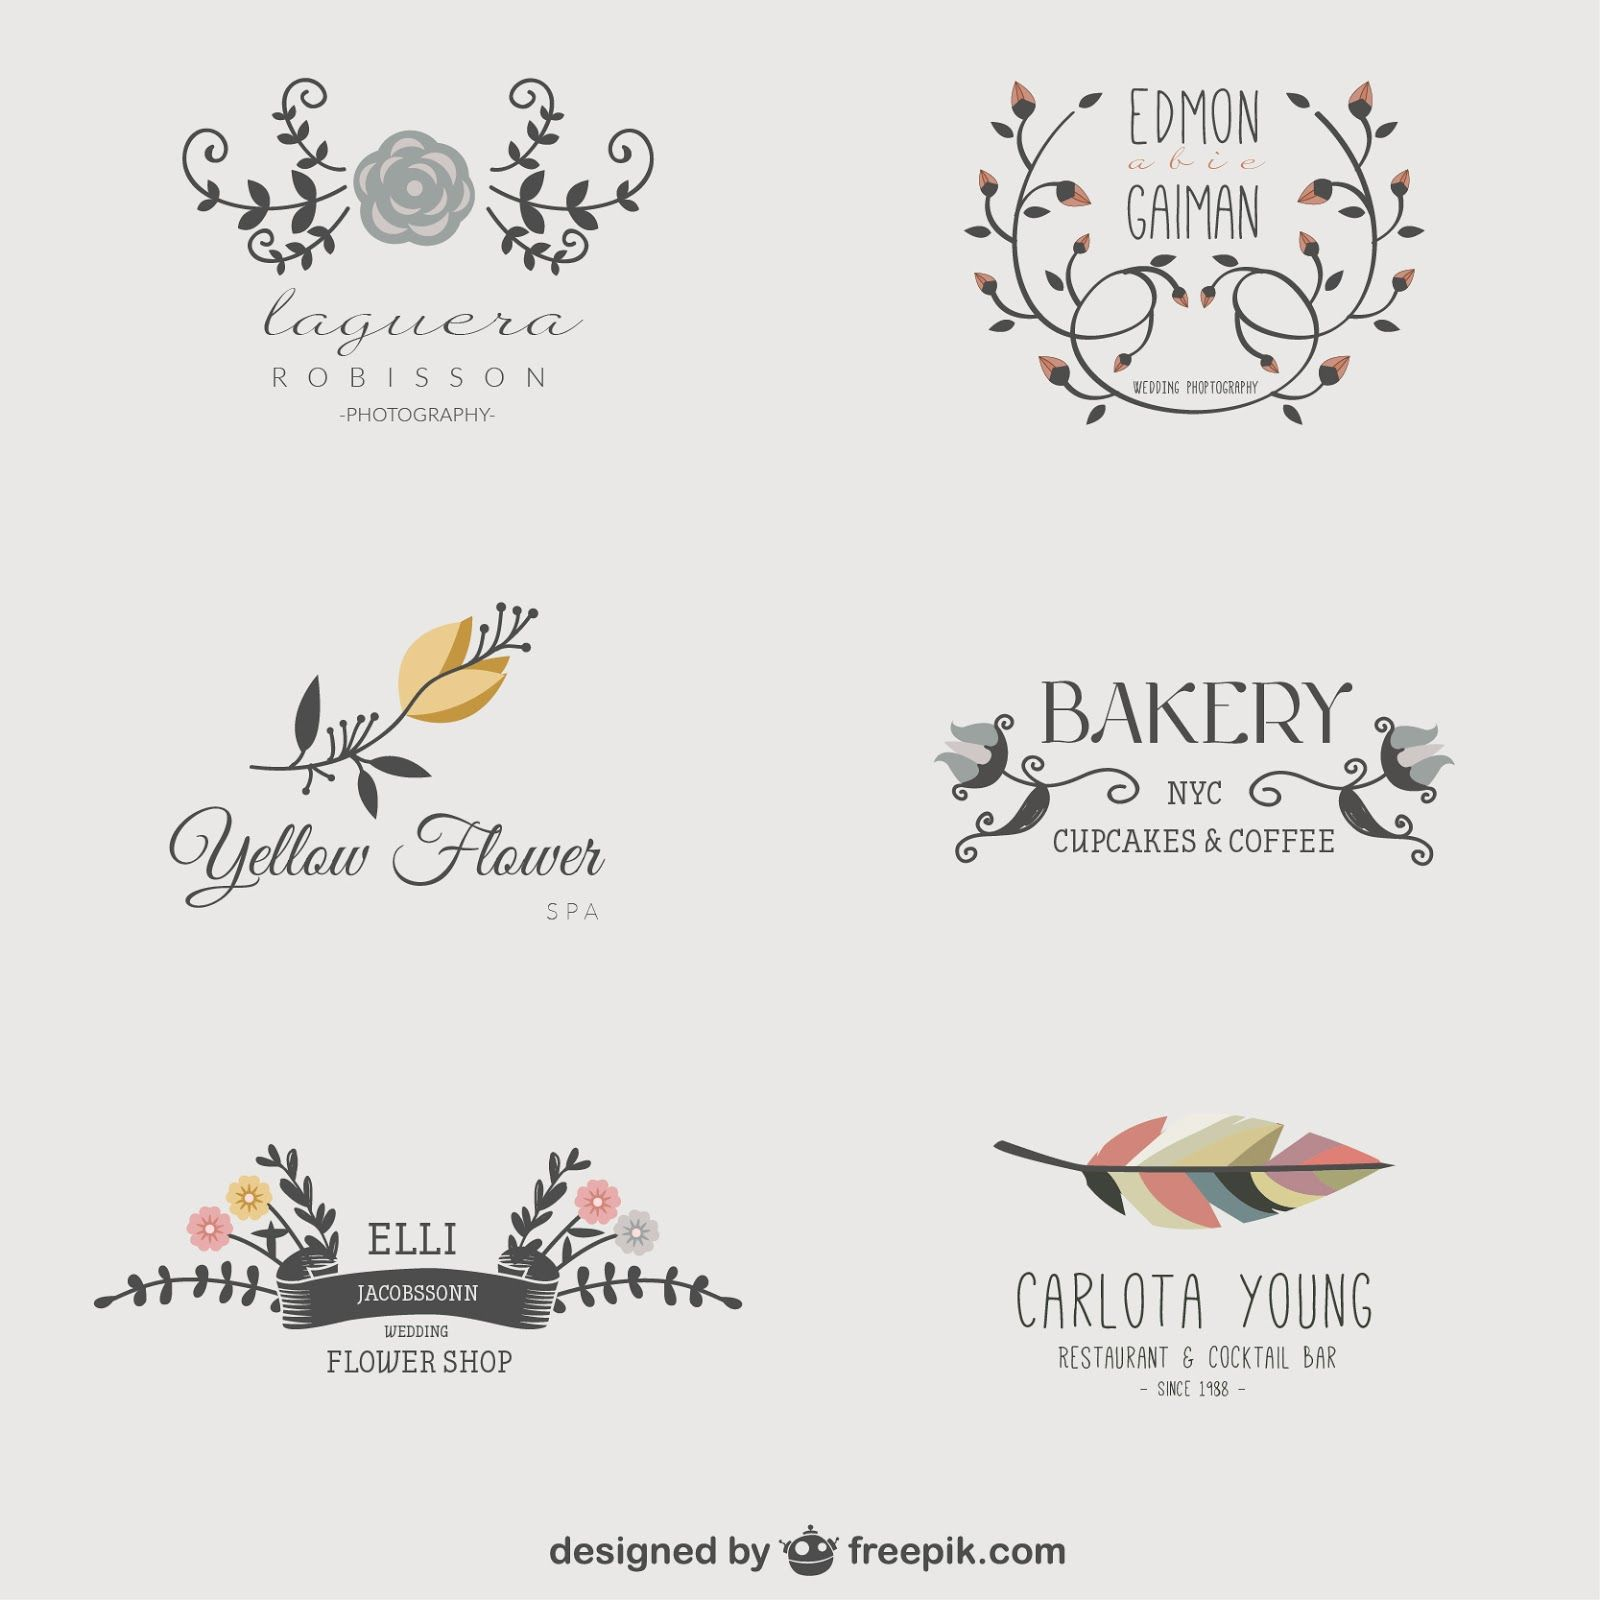 Top 10 copyright free image sources for bloggers logos fonts top 10 copyright free image sources for bloggers bakery logo pronofoot35fo Image collections